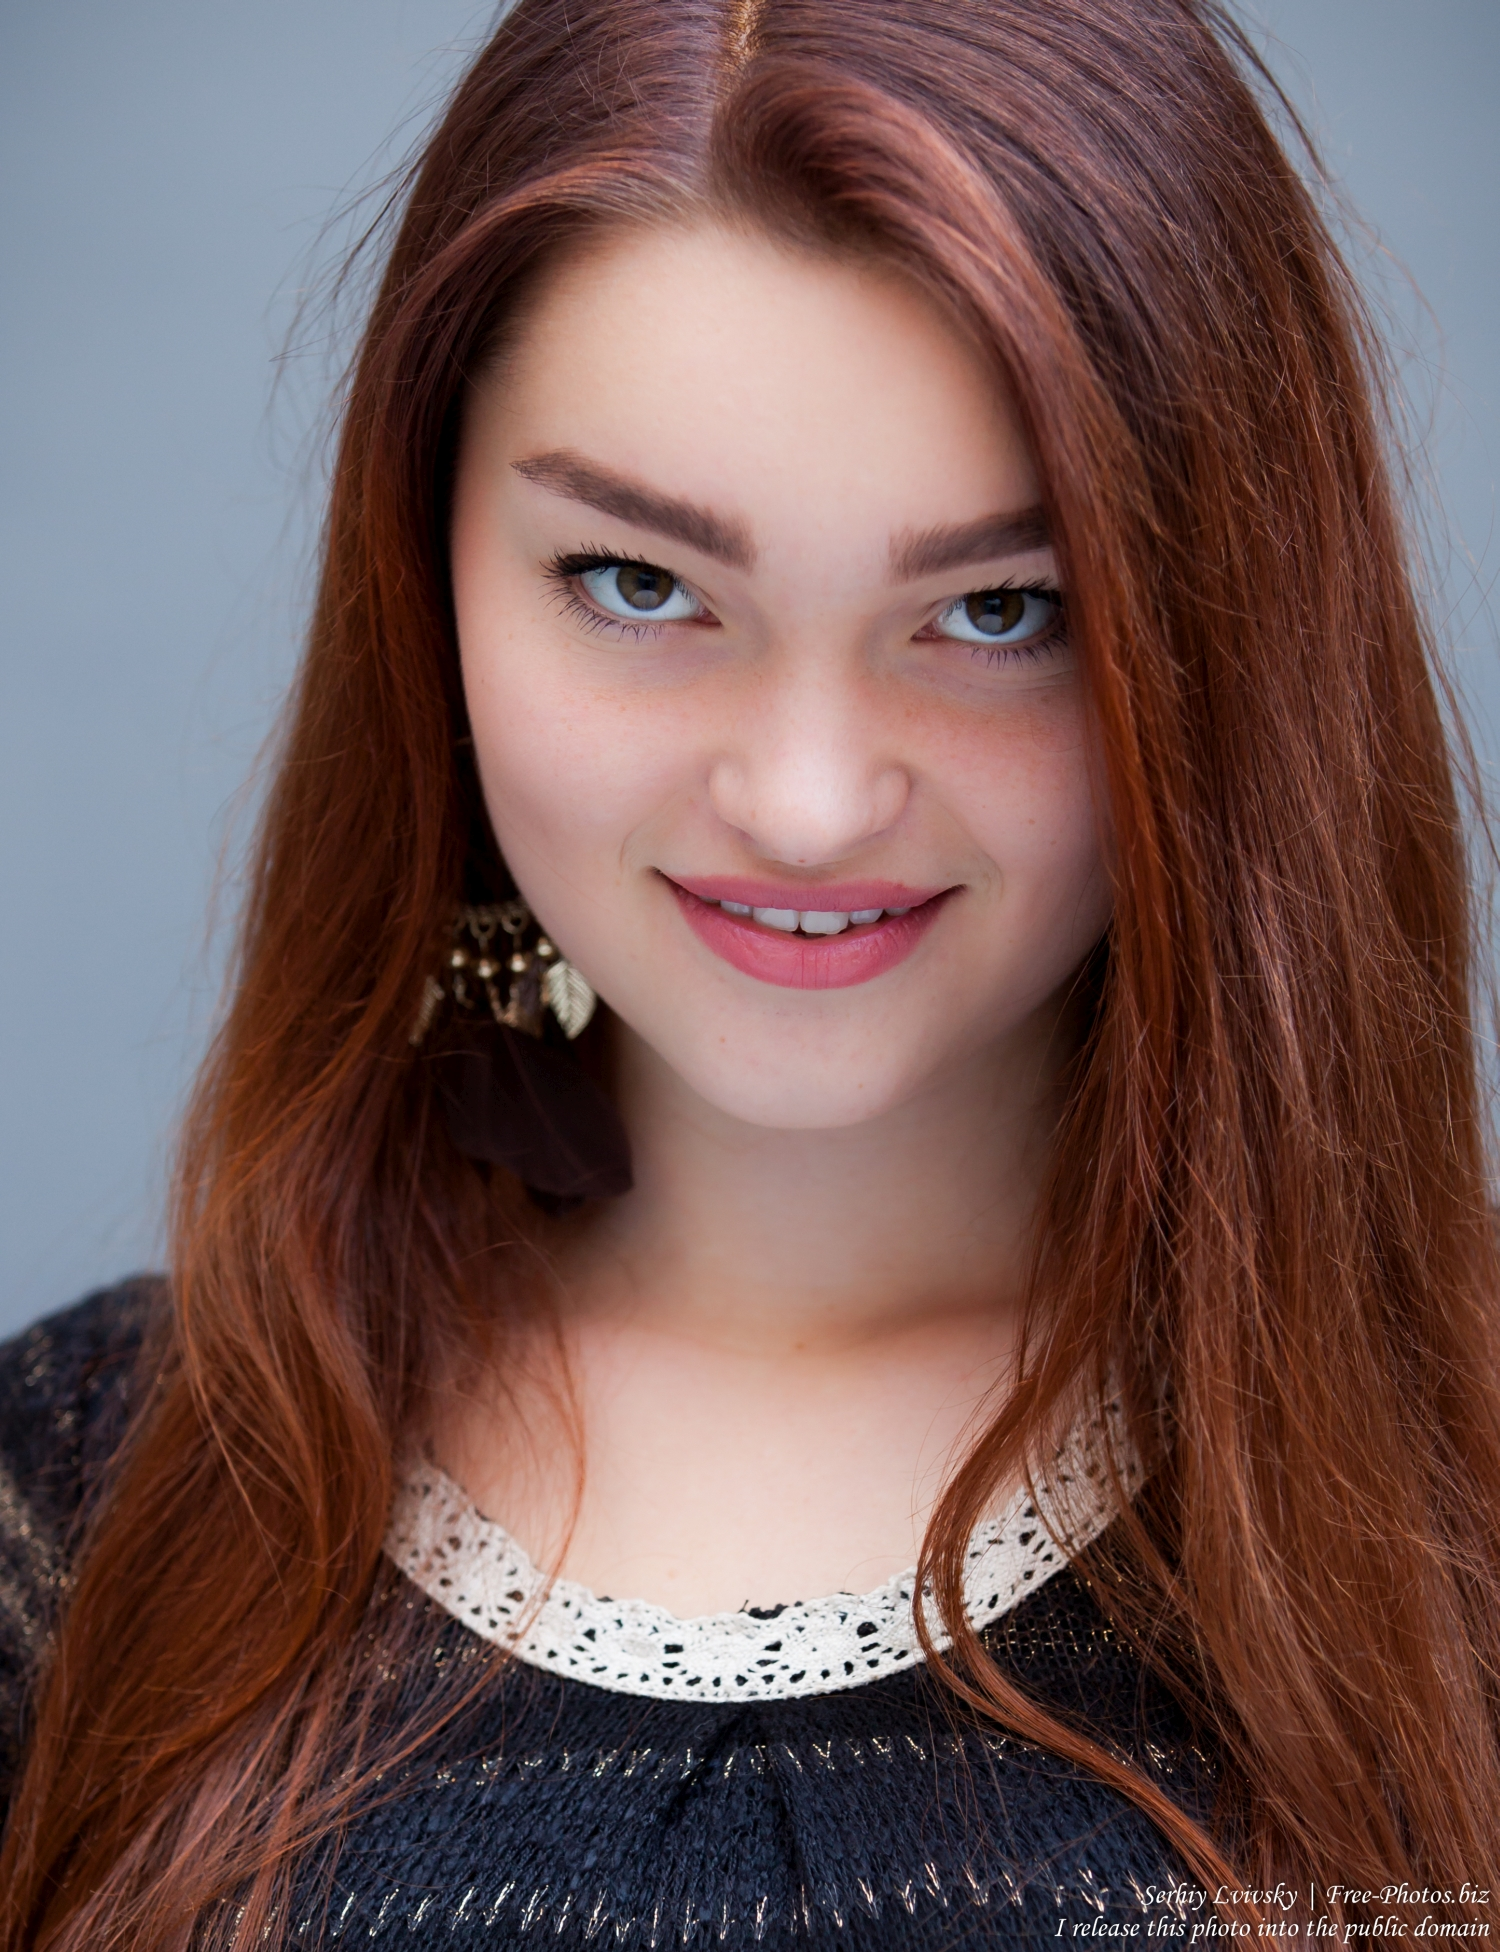 an_18-year-old_girl_photographed_by_serhiy_lvivsky_in_oct_2015_08